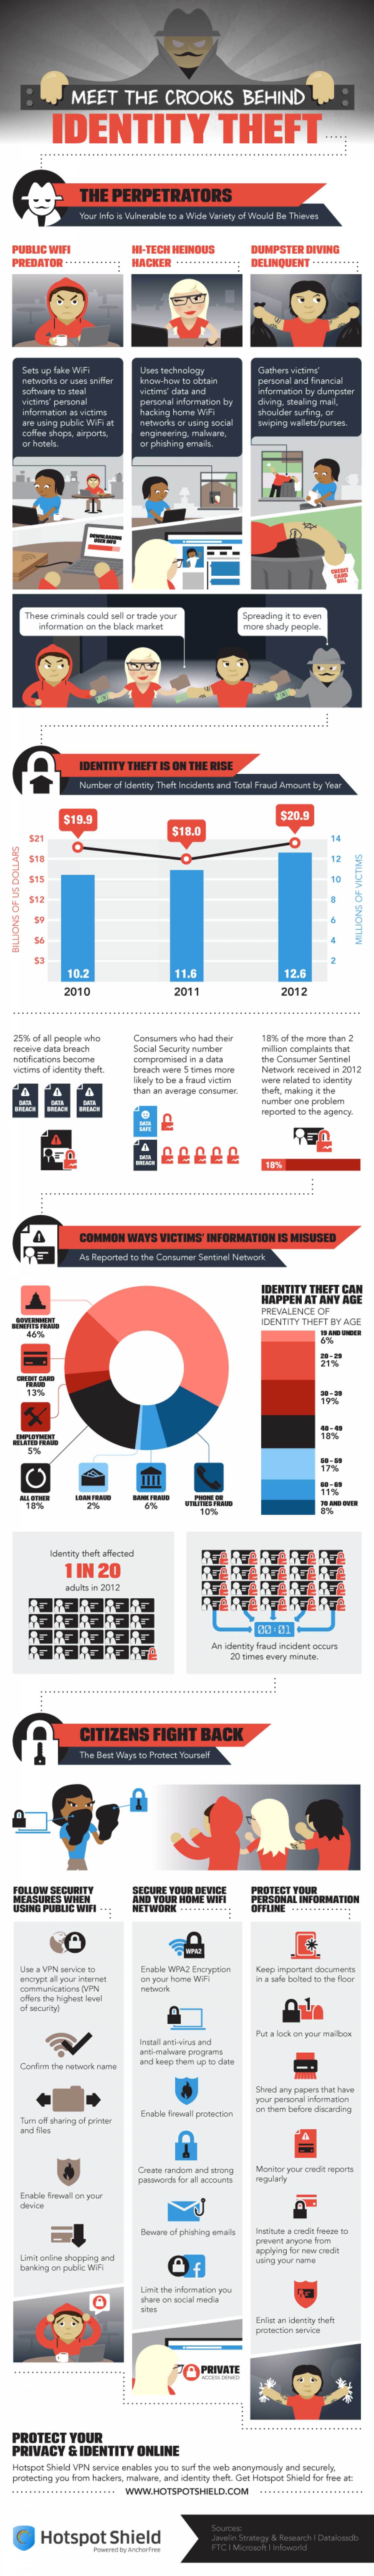 Meet the Crooks Behind Identity Theft Infographic